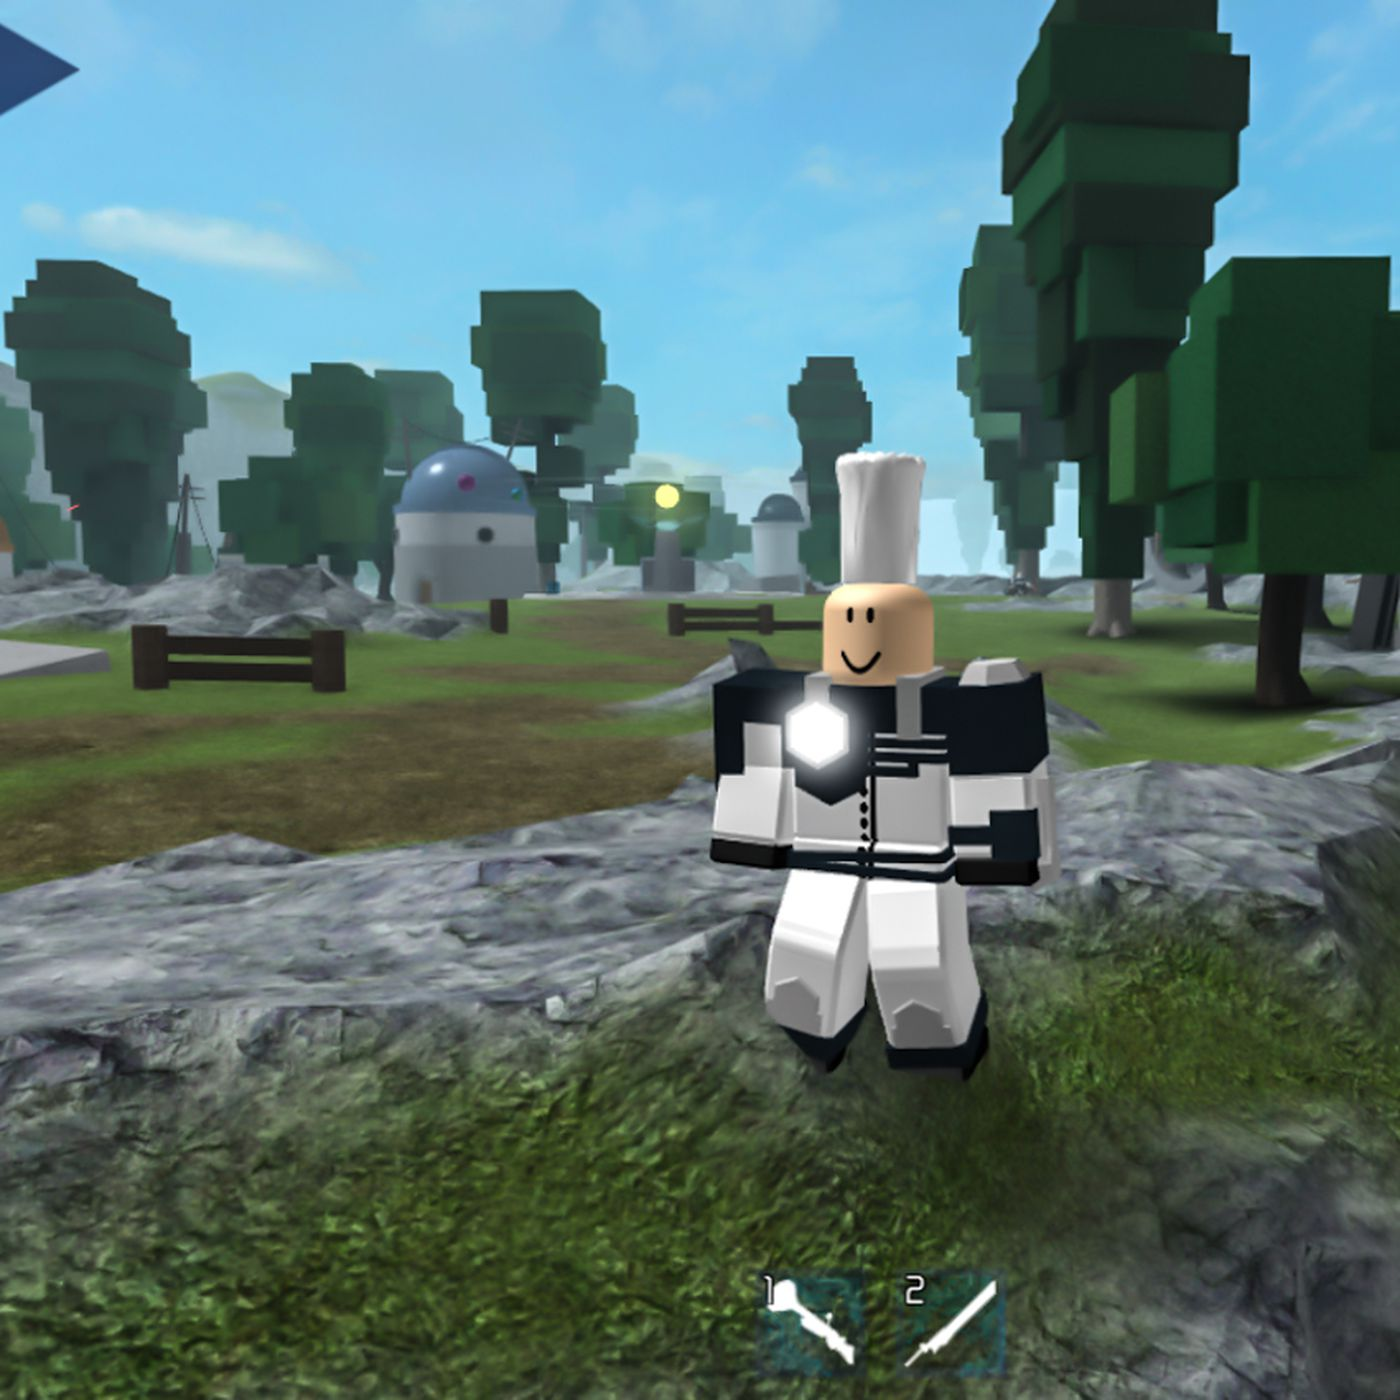 Roblox The Hit Gaming Company You May Not Have Heard Of - whats 1 robux worth